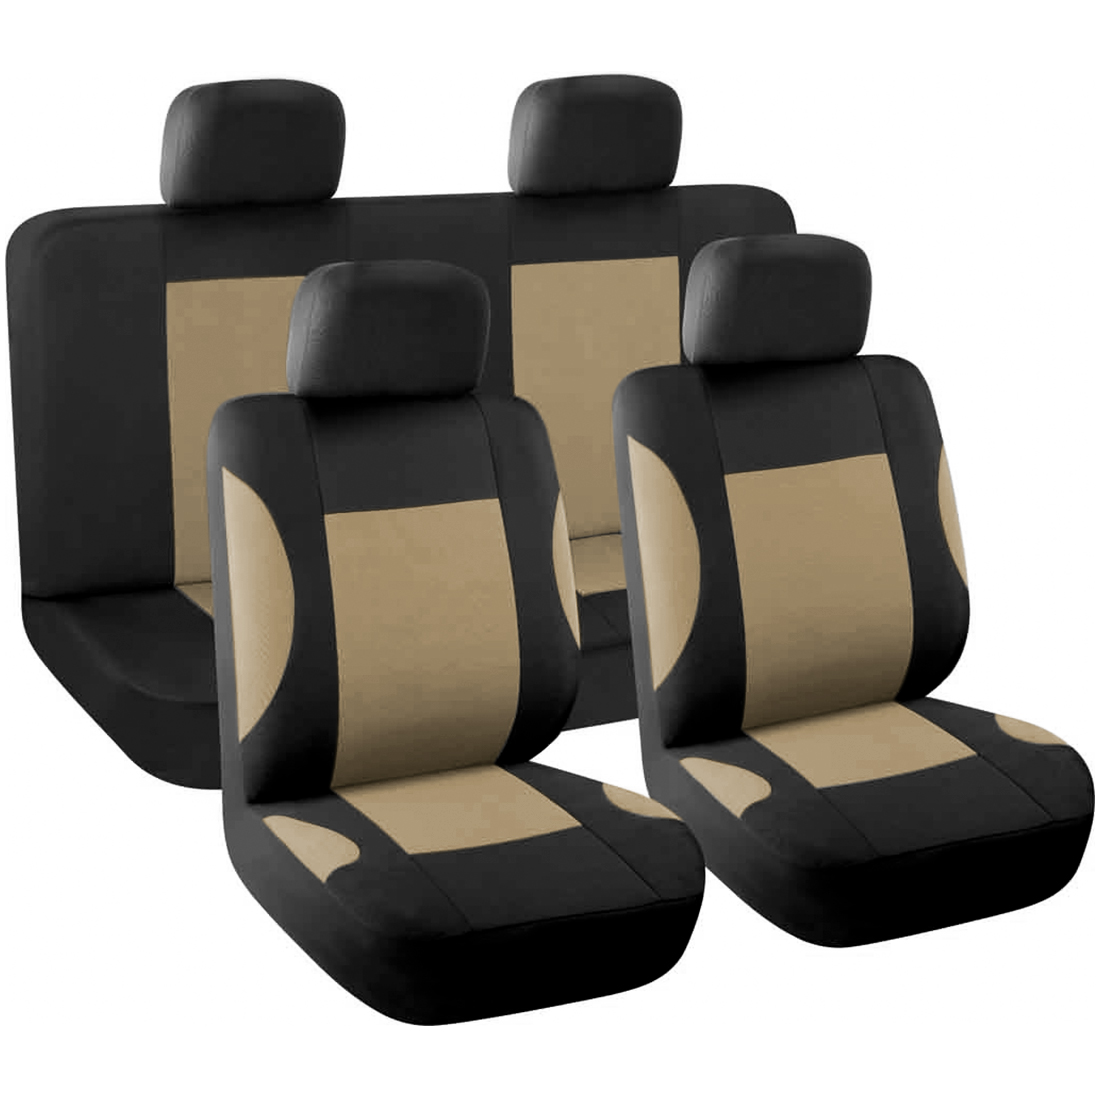 8 piece Styling Auto Interior Accessories Car Seat Cover full set Beige